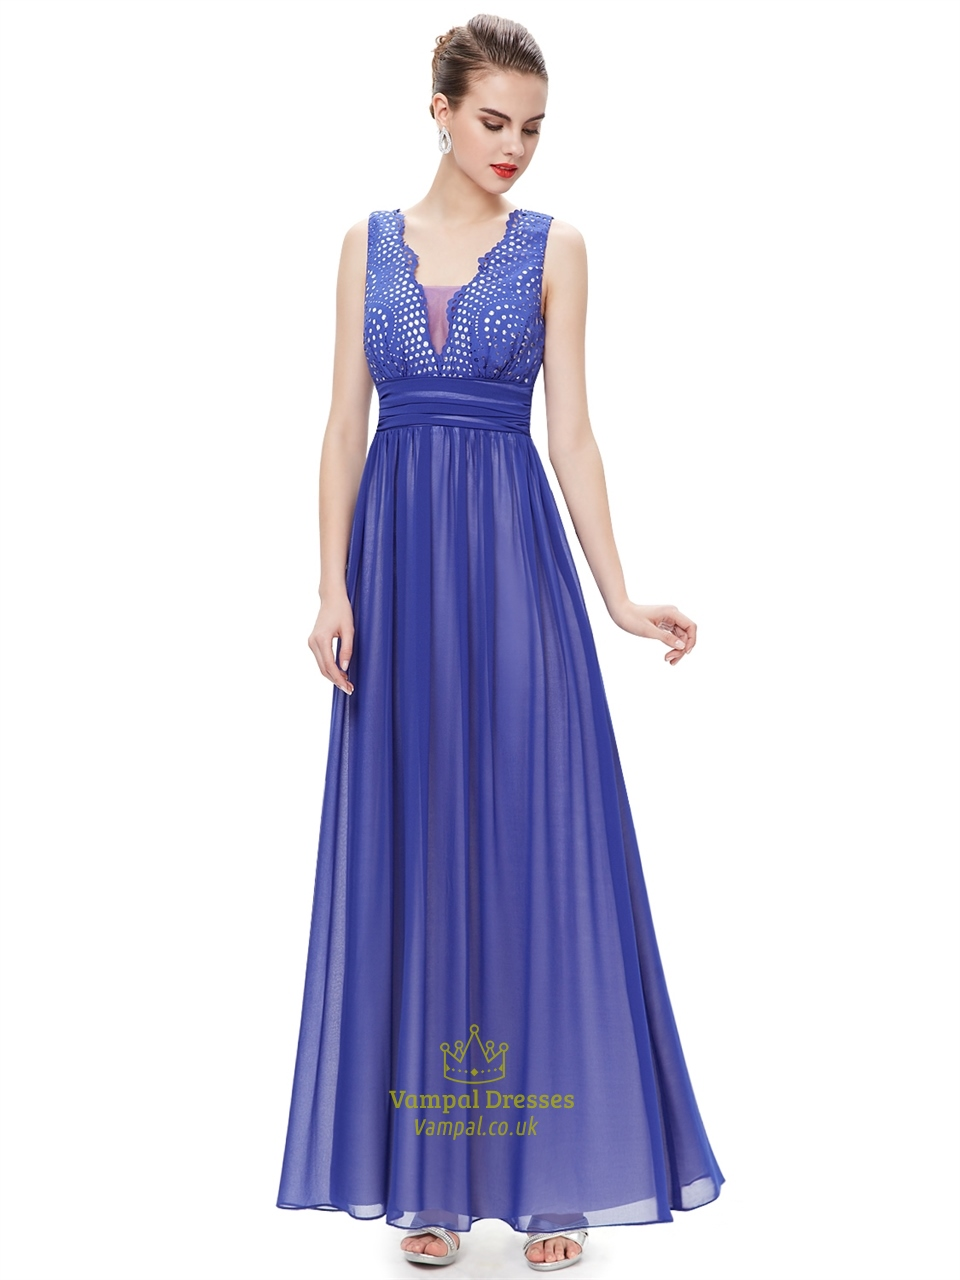 Elegant Royal Blue Chiffon Formal Dresses With Embellished Bodice ...